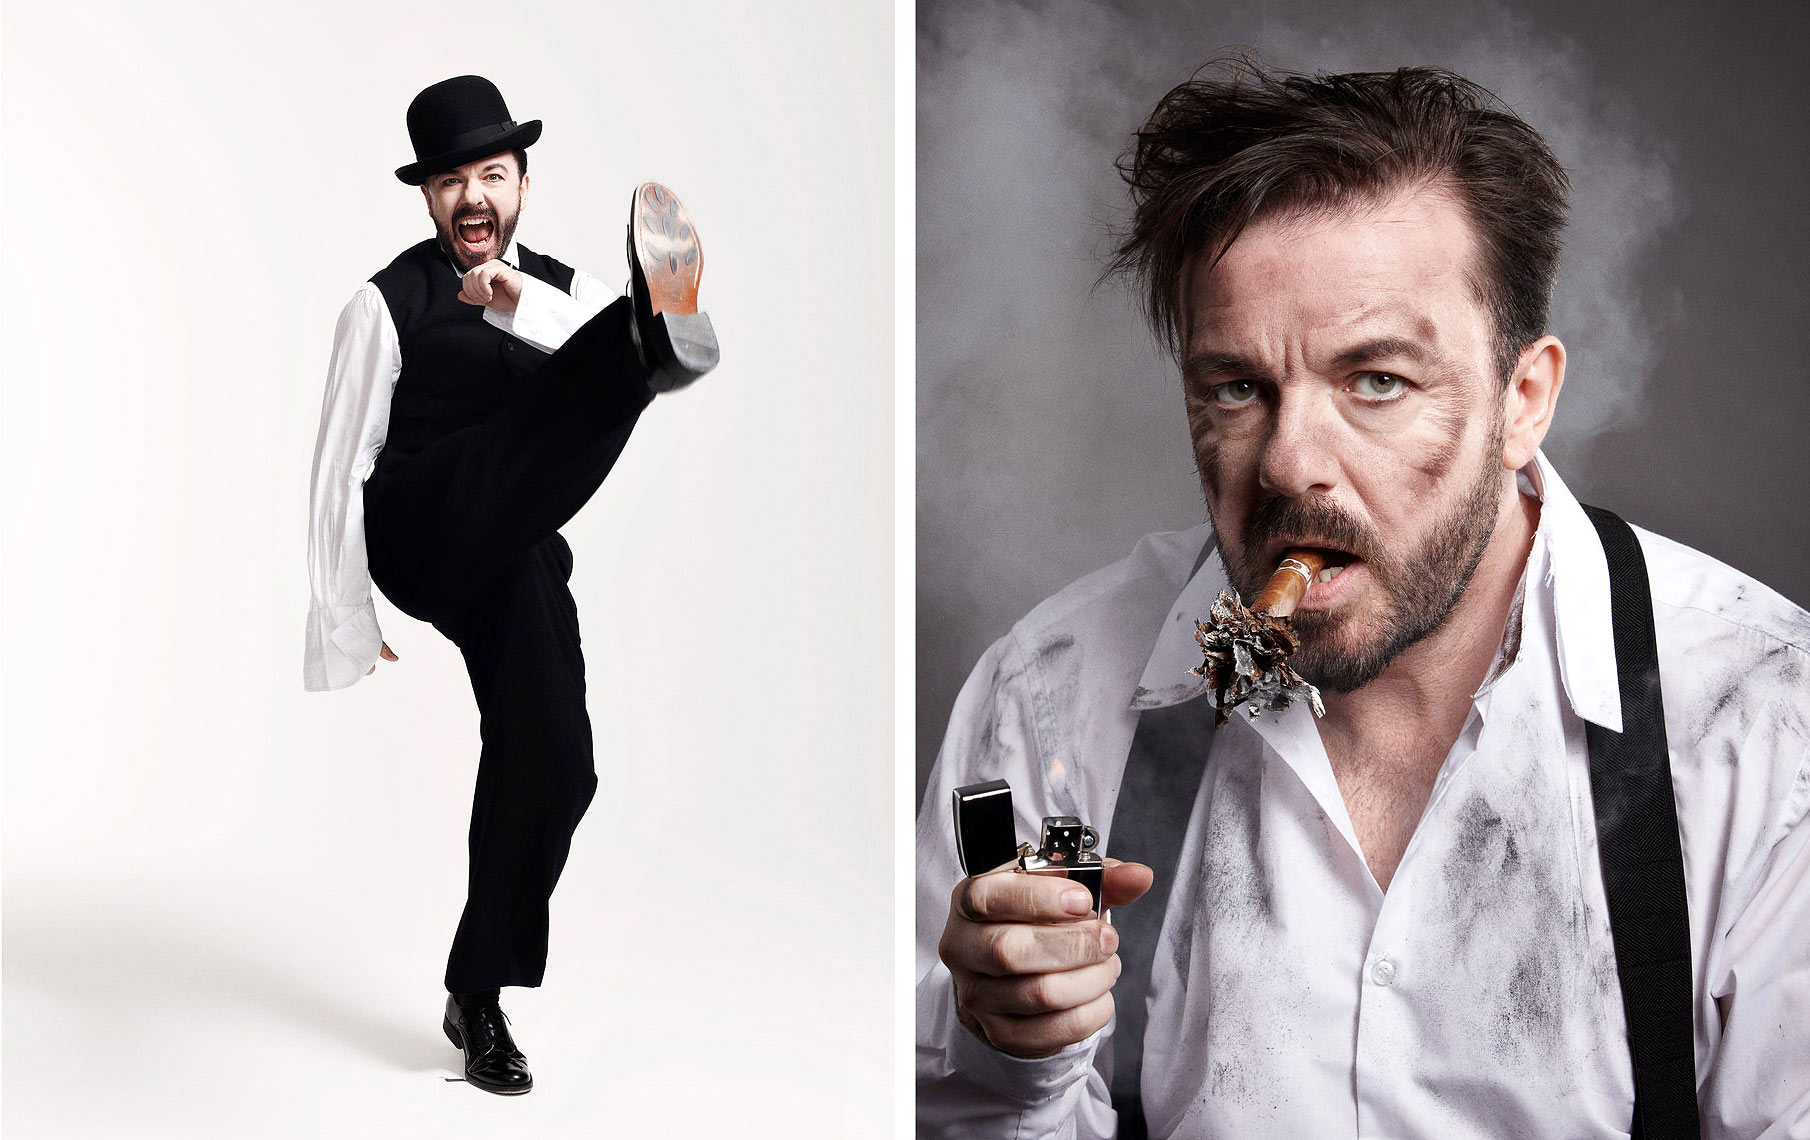 ricky gervais Portrait Music Advertising